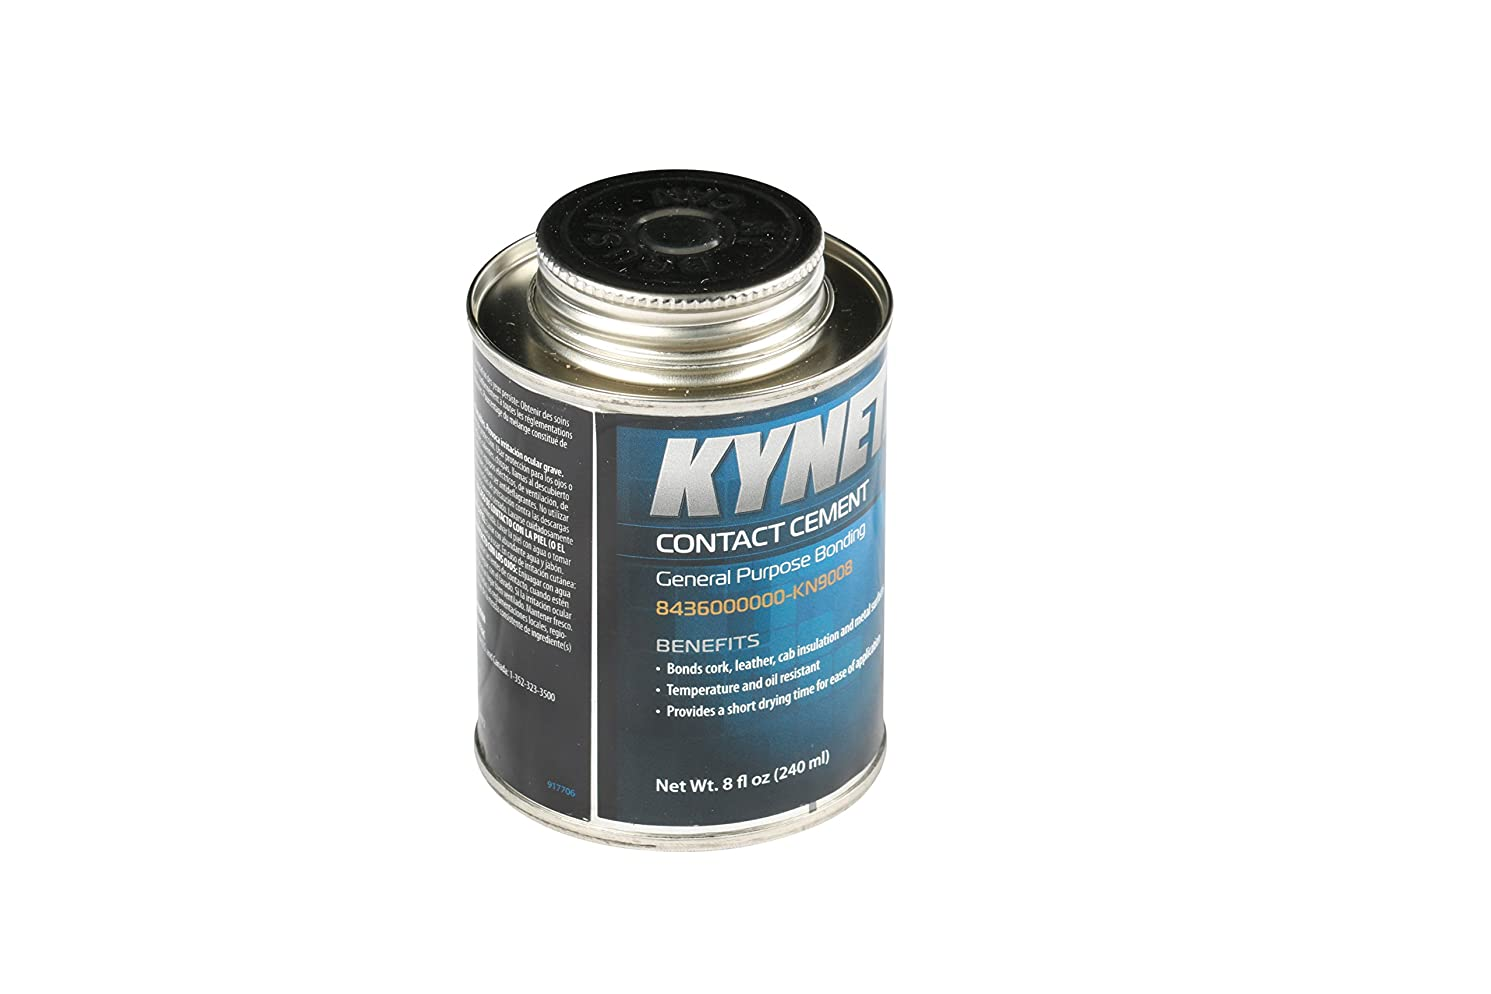 Kynetx Contact Cement, 8 Oz Can 8436000000-KN9008 - Durable, Easy To Apply Green Adhesive. Industrial and Automotive Adhesives